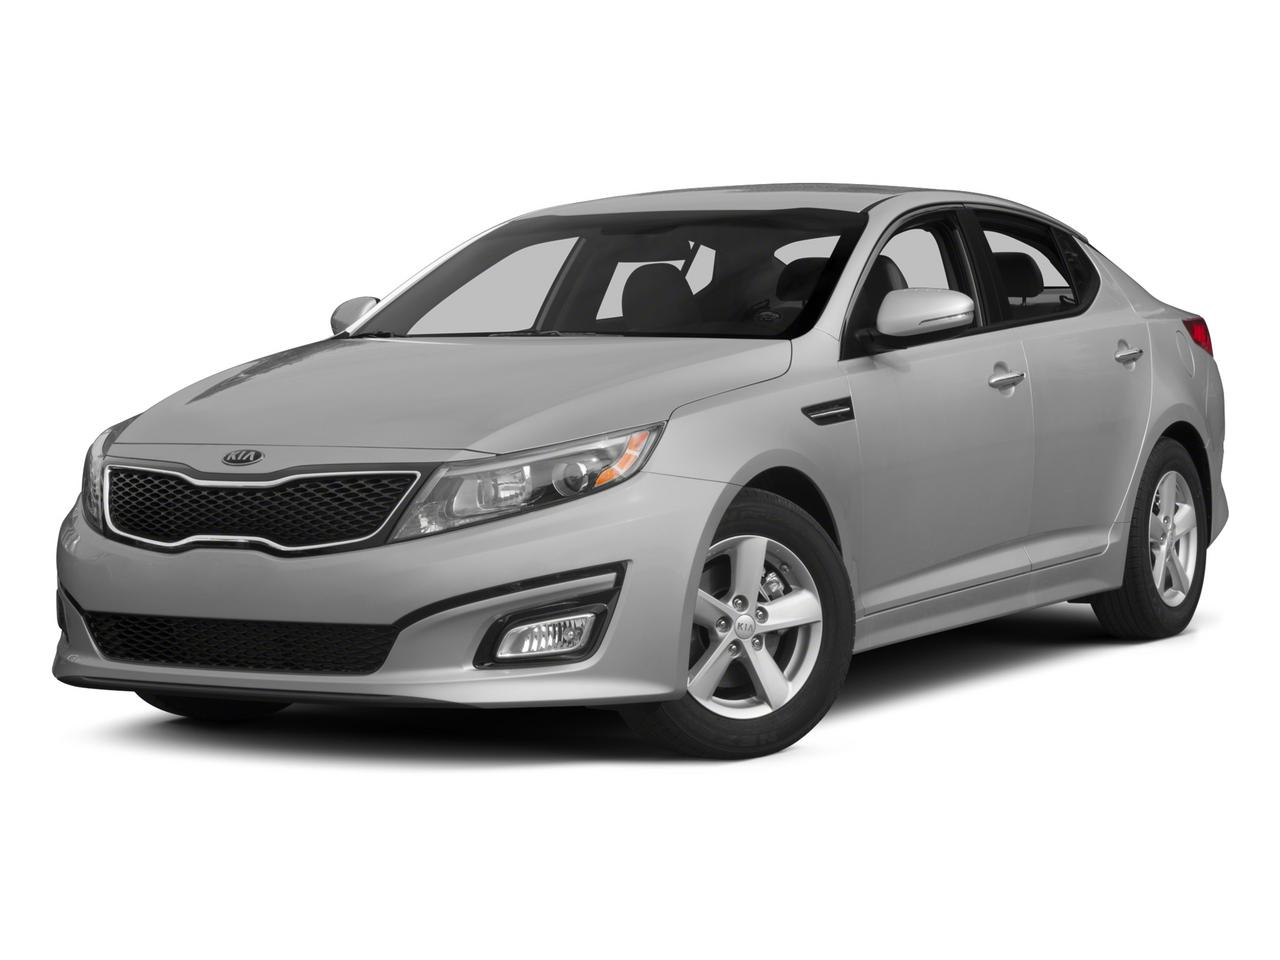 2015 Kia Optima Vehicle Photo in Spokane, WA 99207